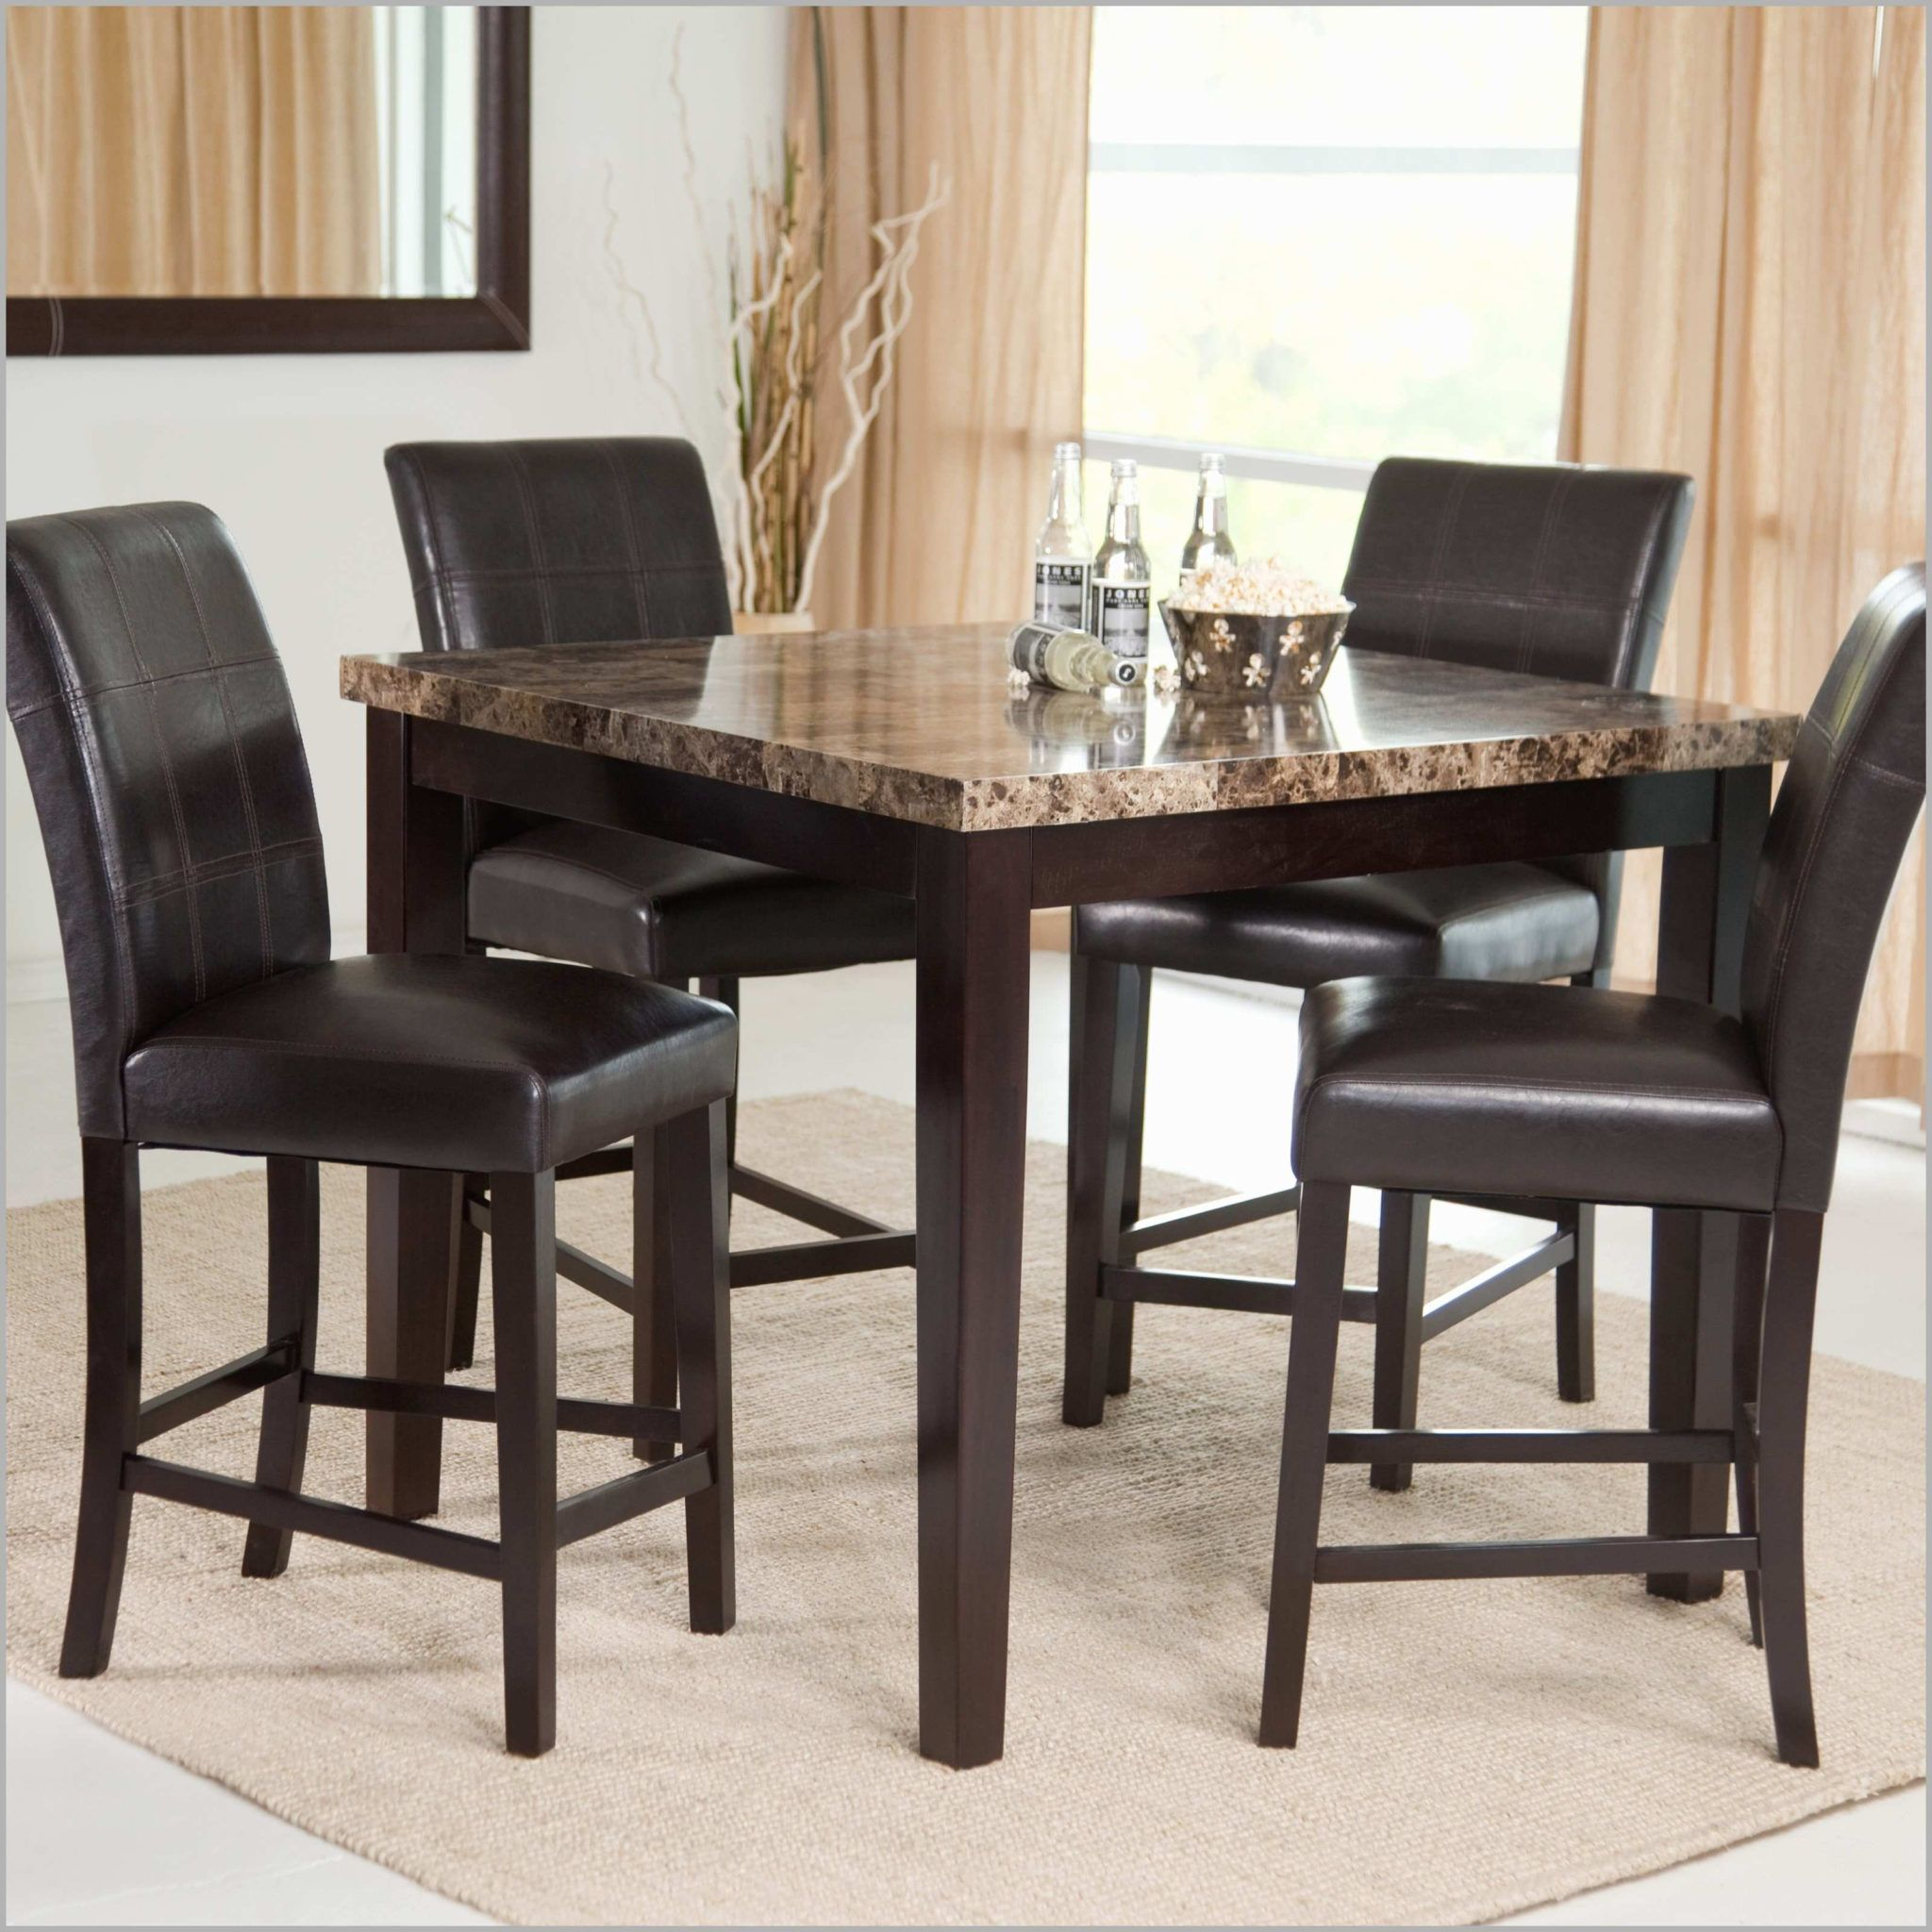 Beautiful Black High Top Kitchen Table Dining Room Table Set Kitchen Table Settings Counter Height Dining Table Set